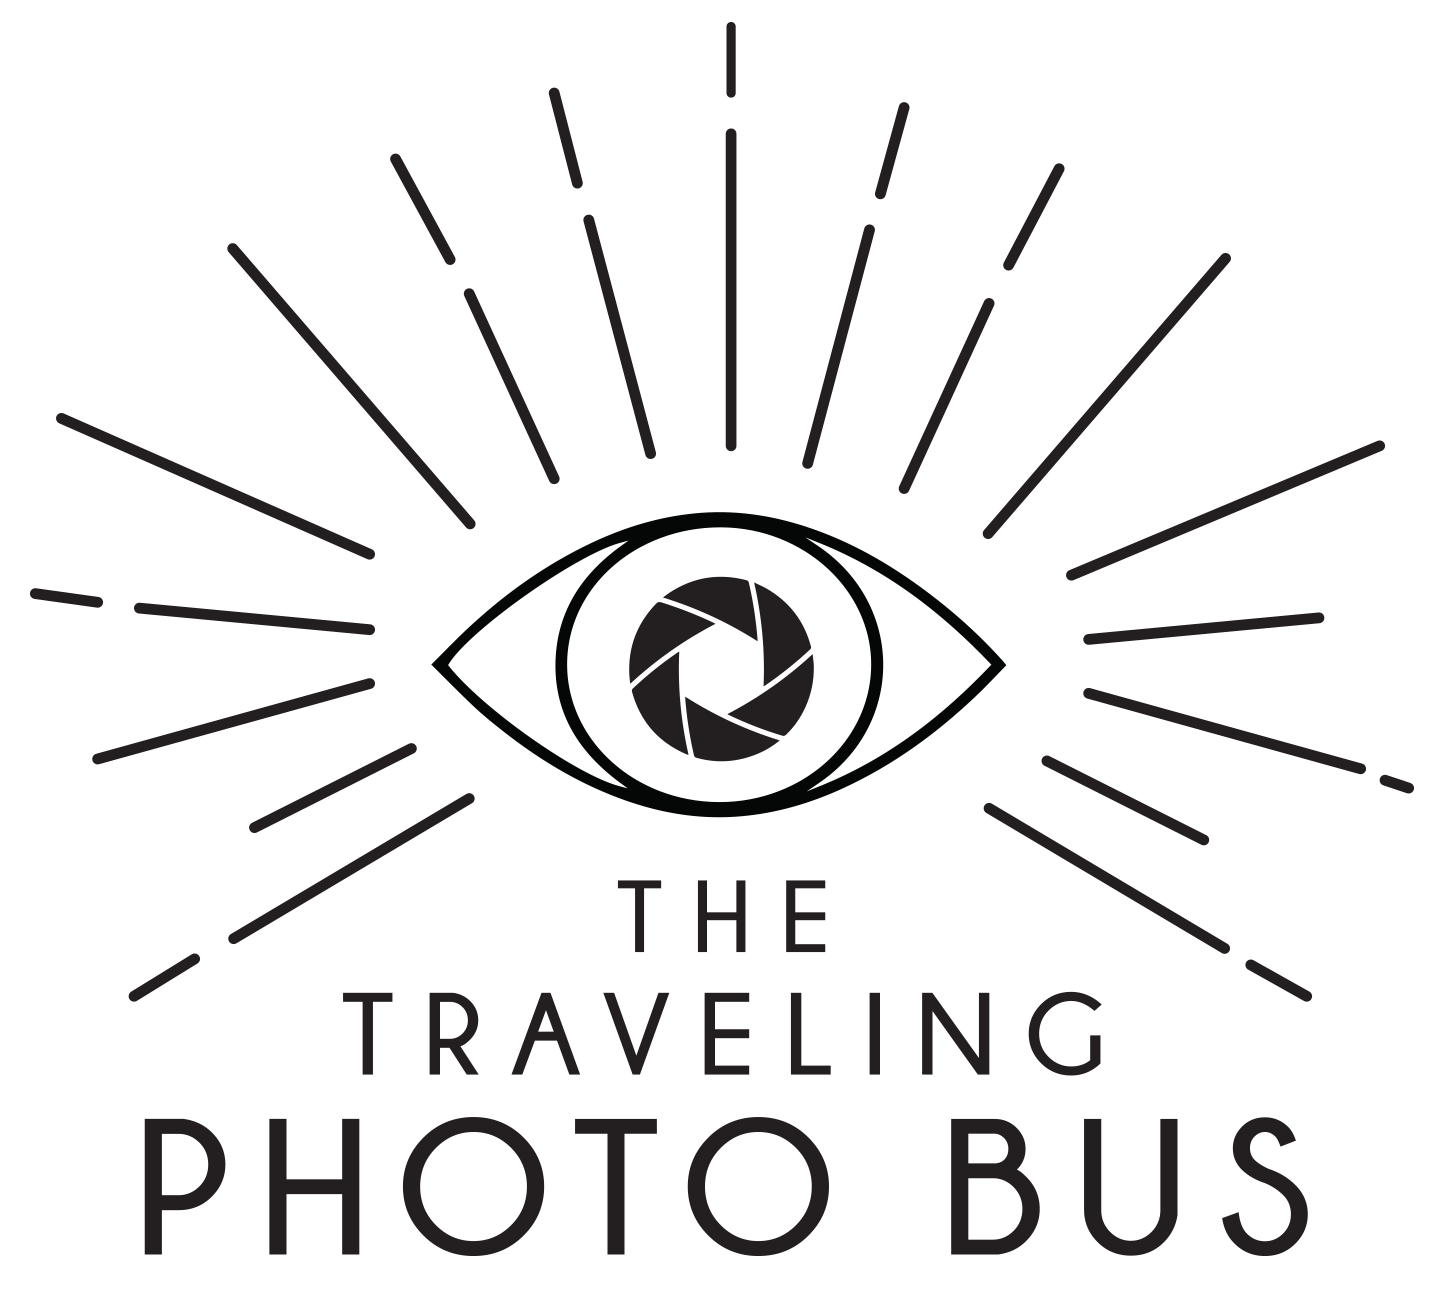 The Traveling Photo Bus